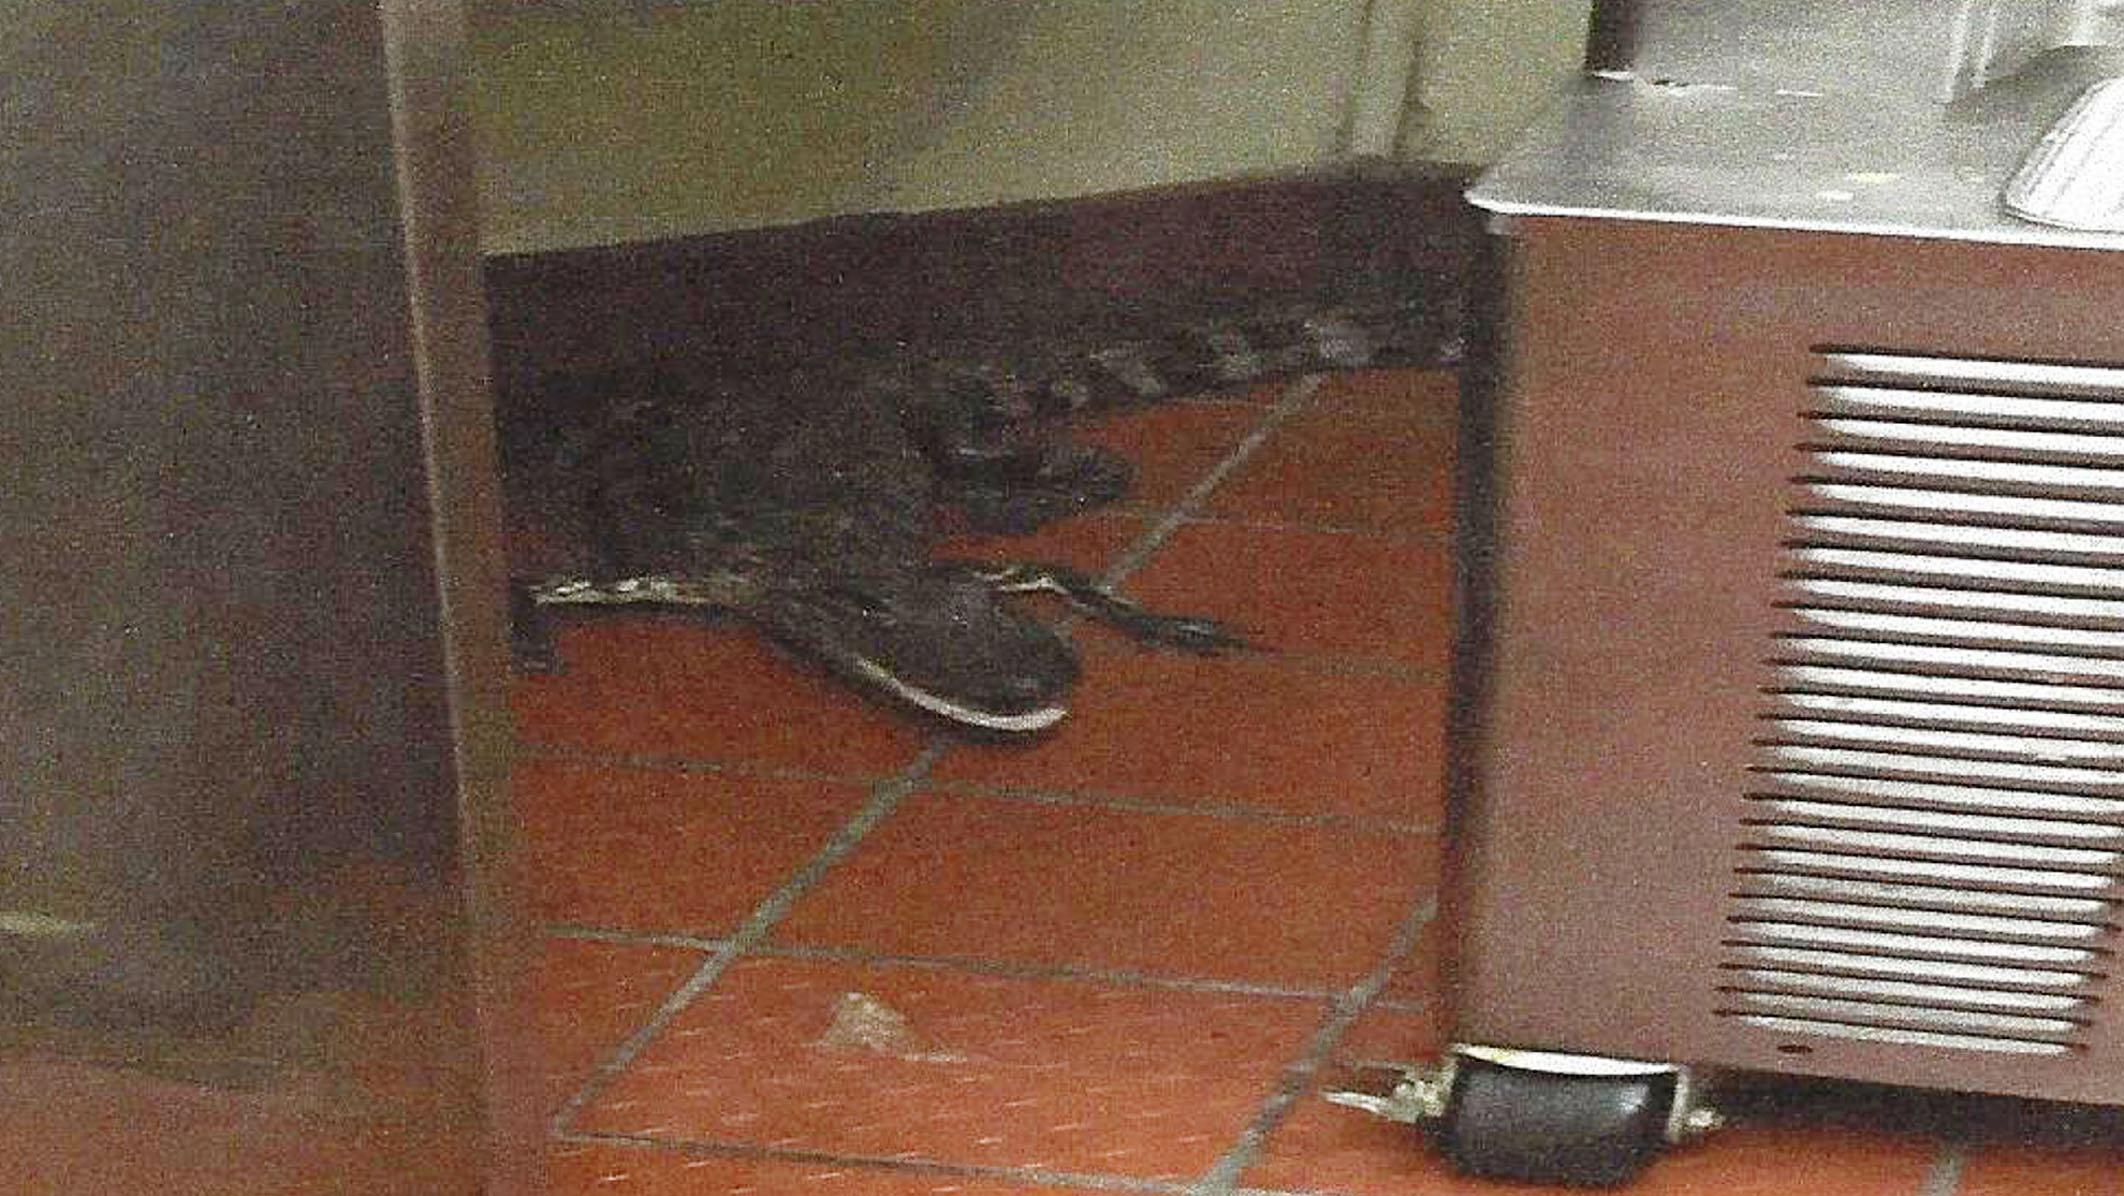 Florida man charged with tossing live alligator into Wendy's drive-thru